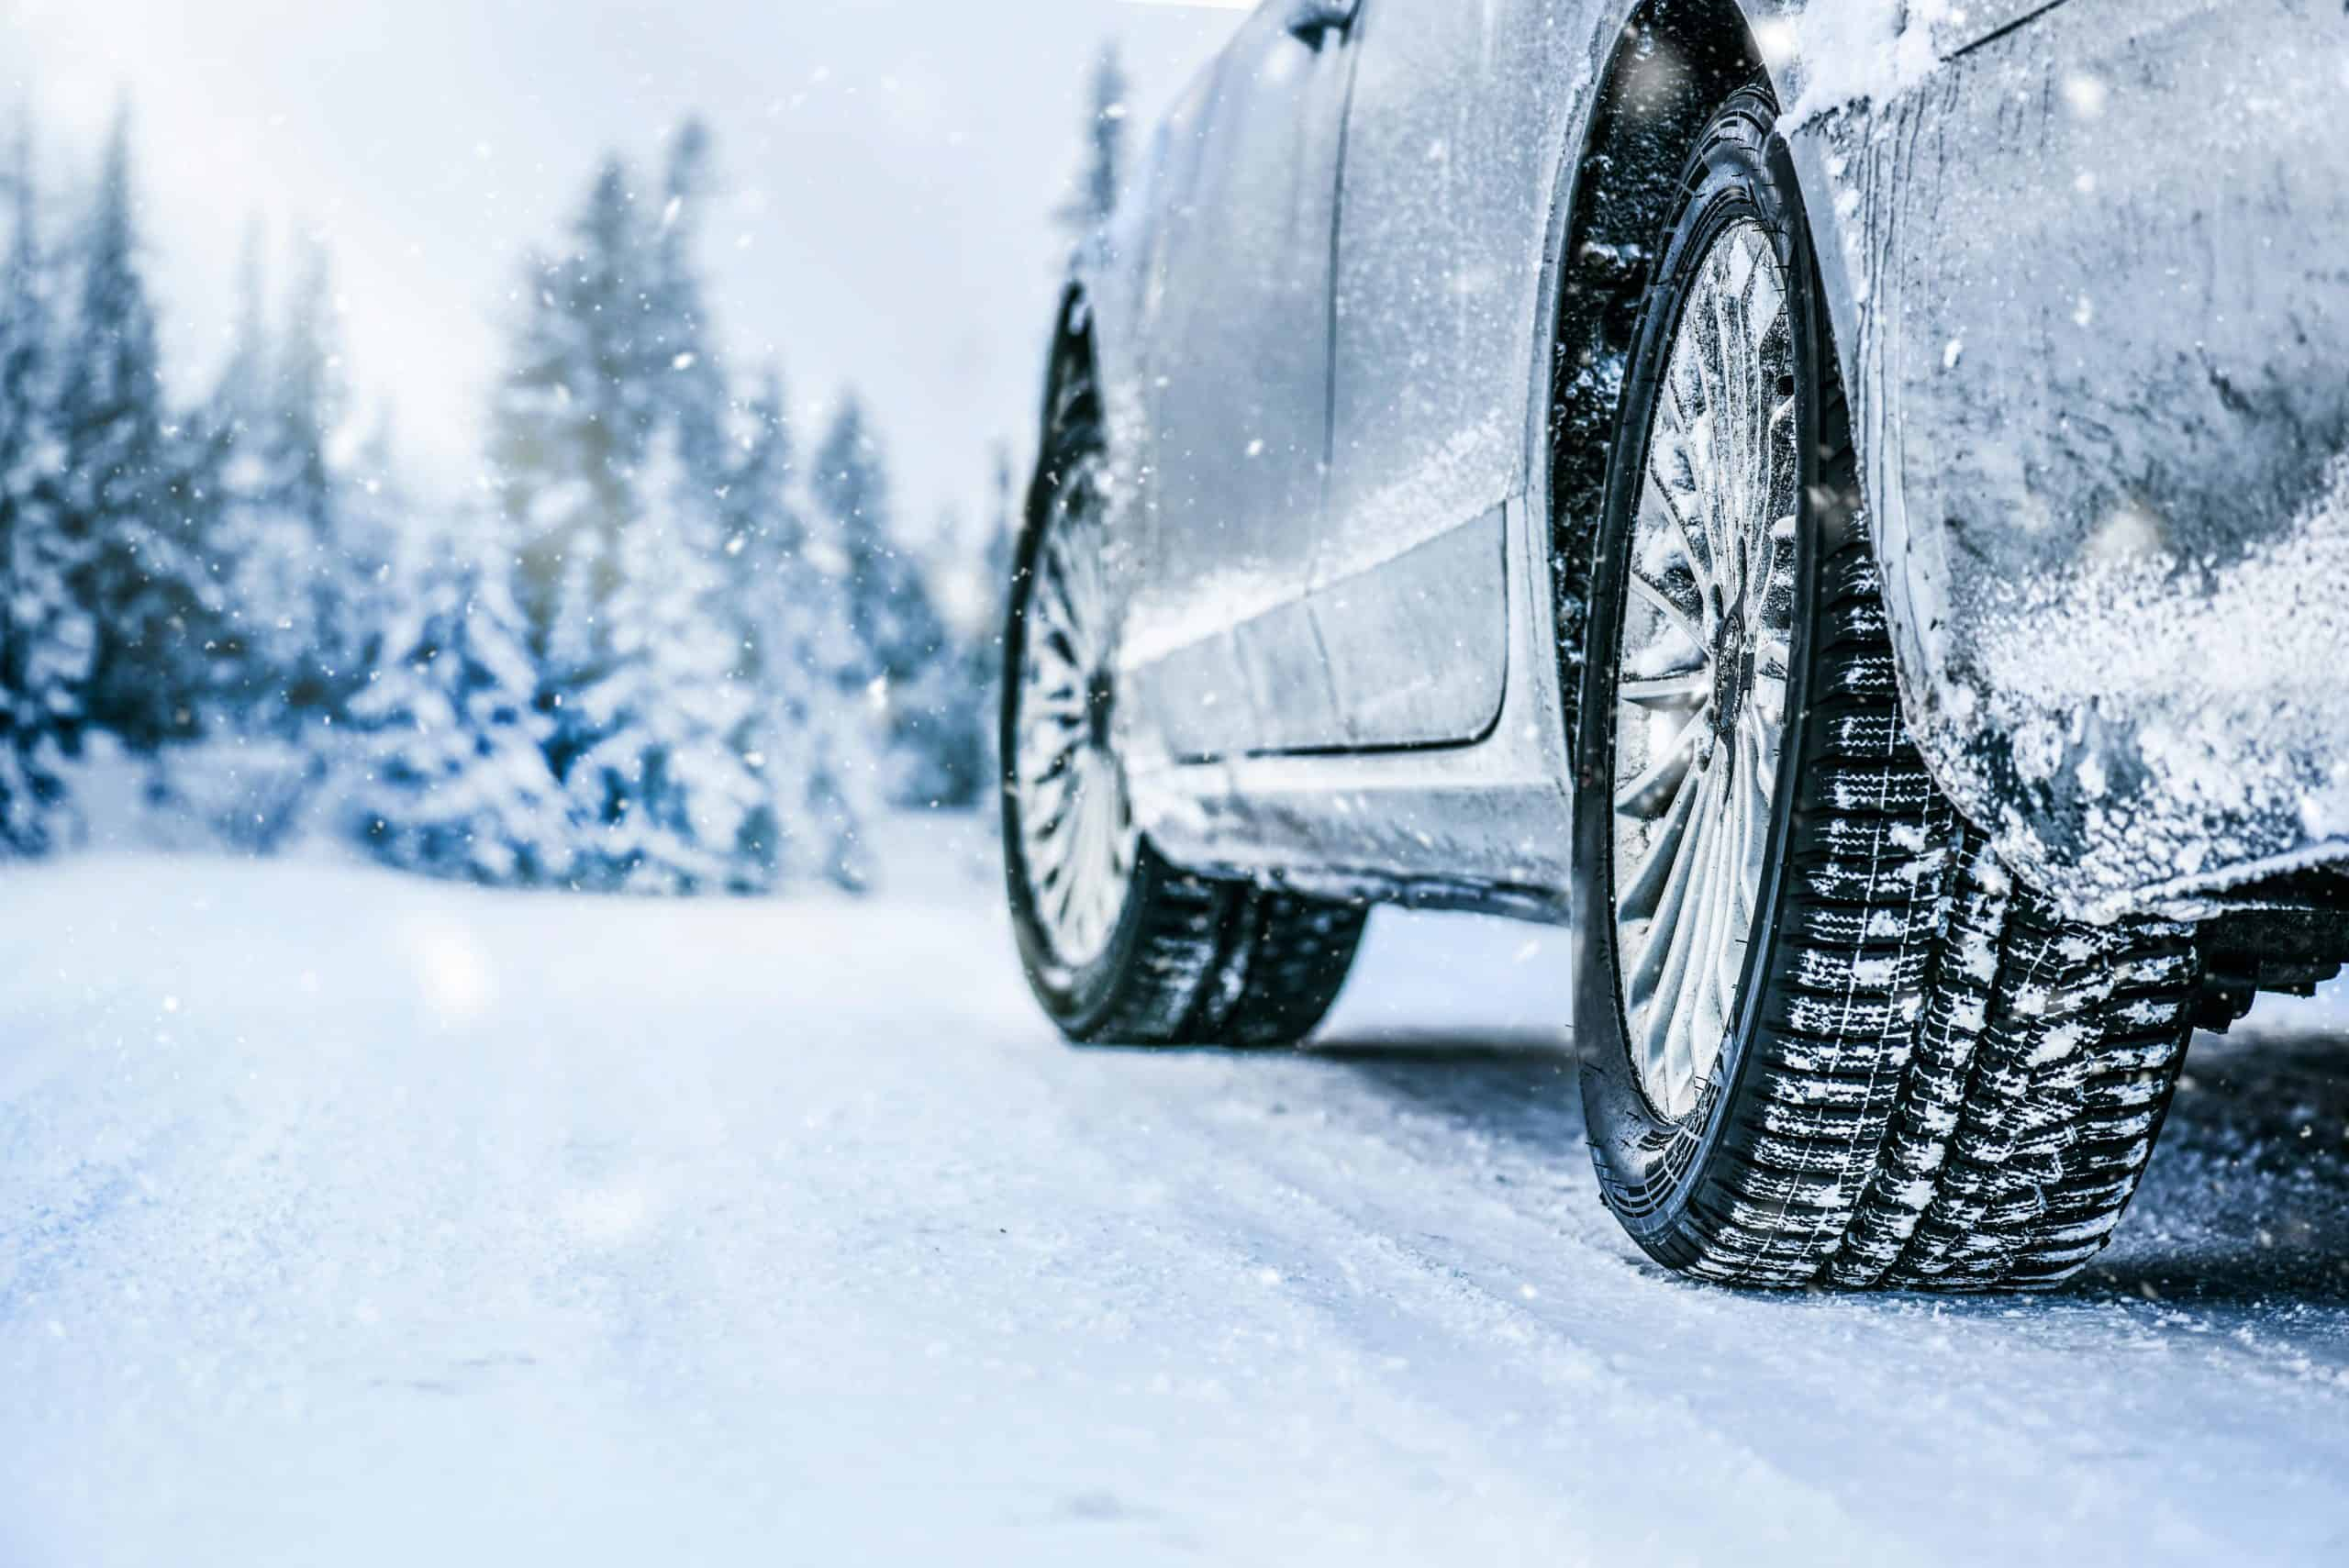 10 Best Snow Tires for Winter Driving [Buying Guide]